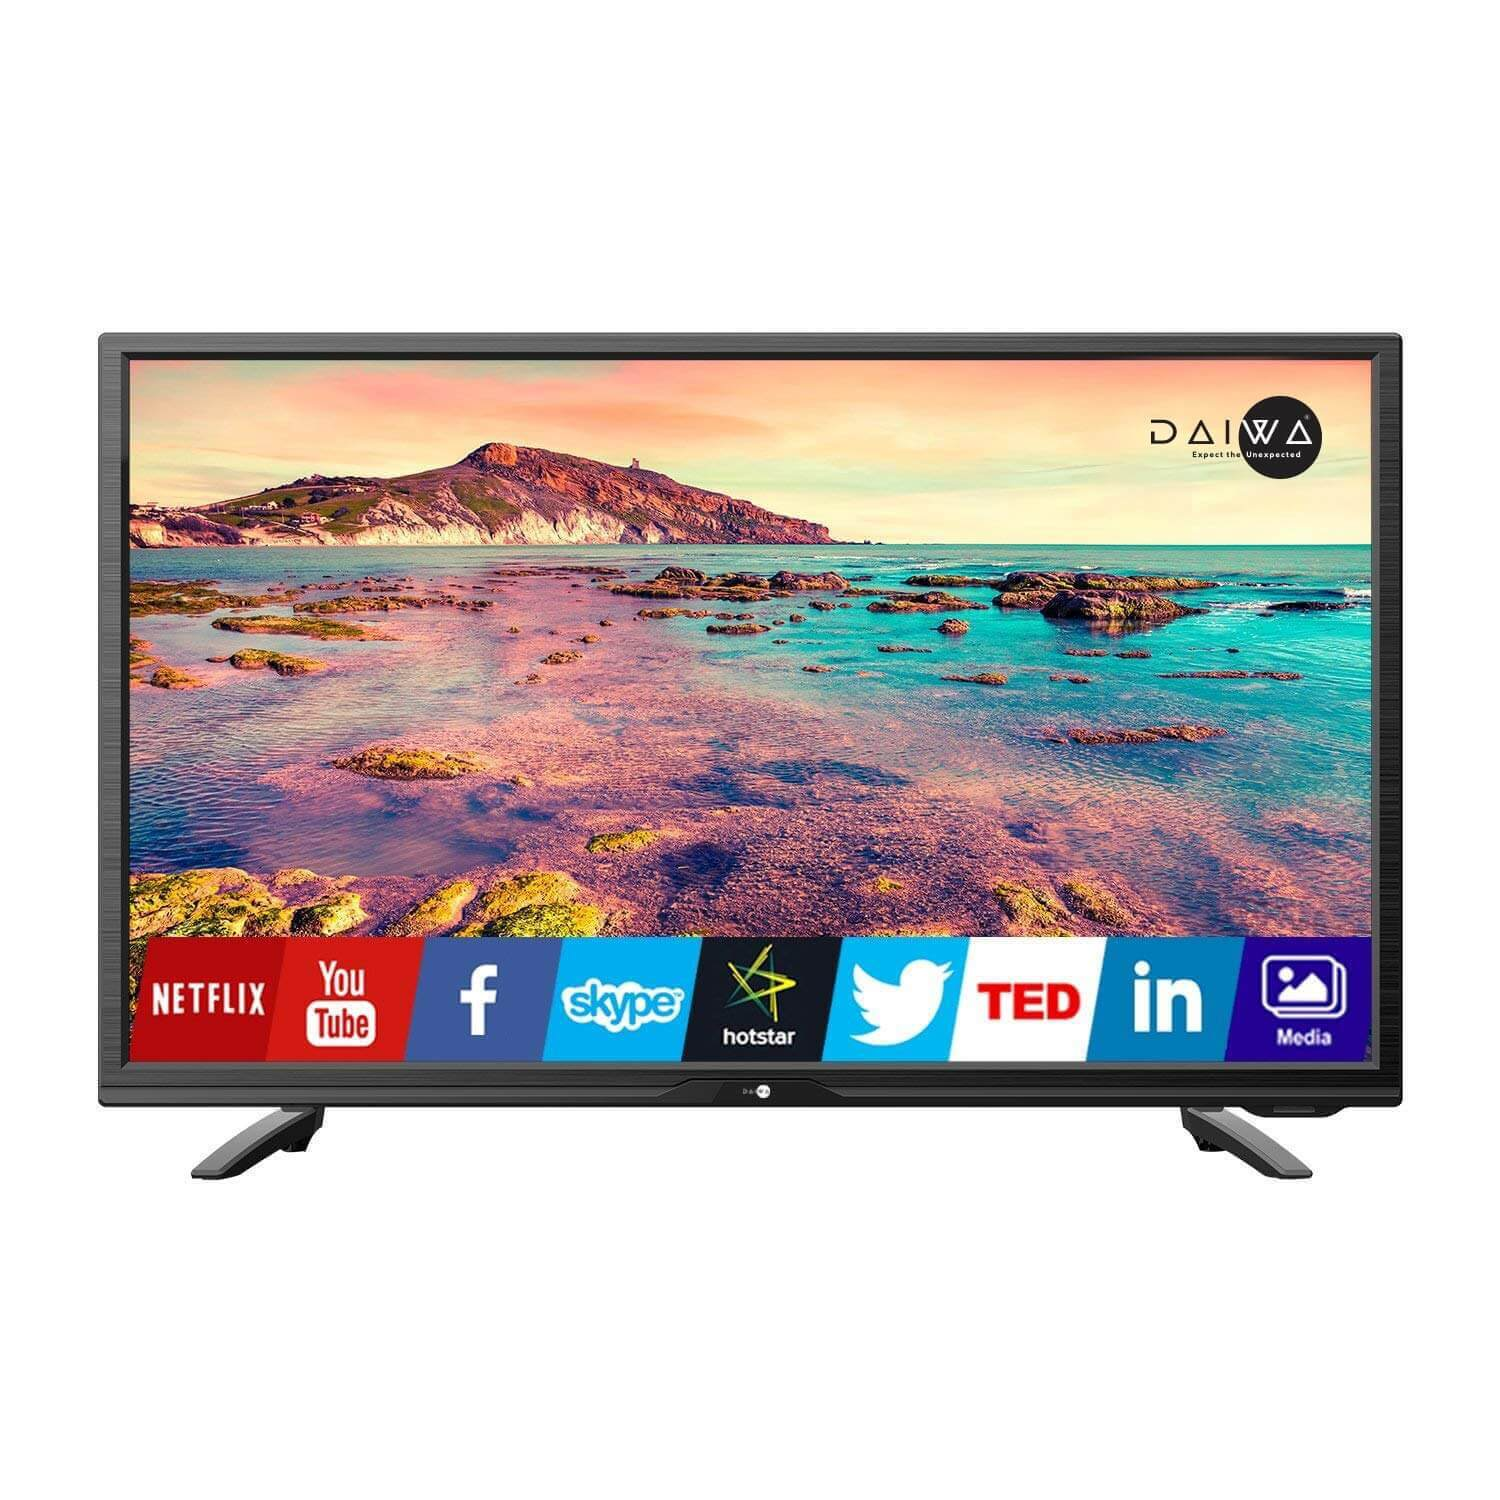 DAIWA D32C4S 80cm (32) Smart LED TV